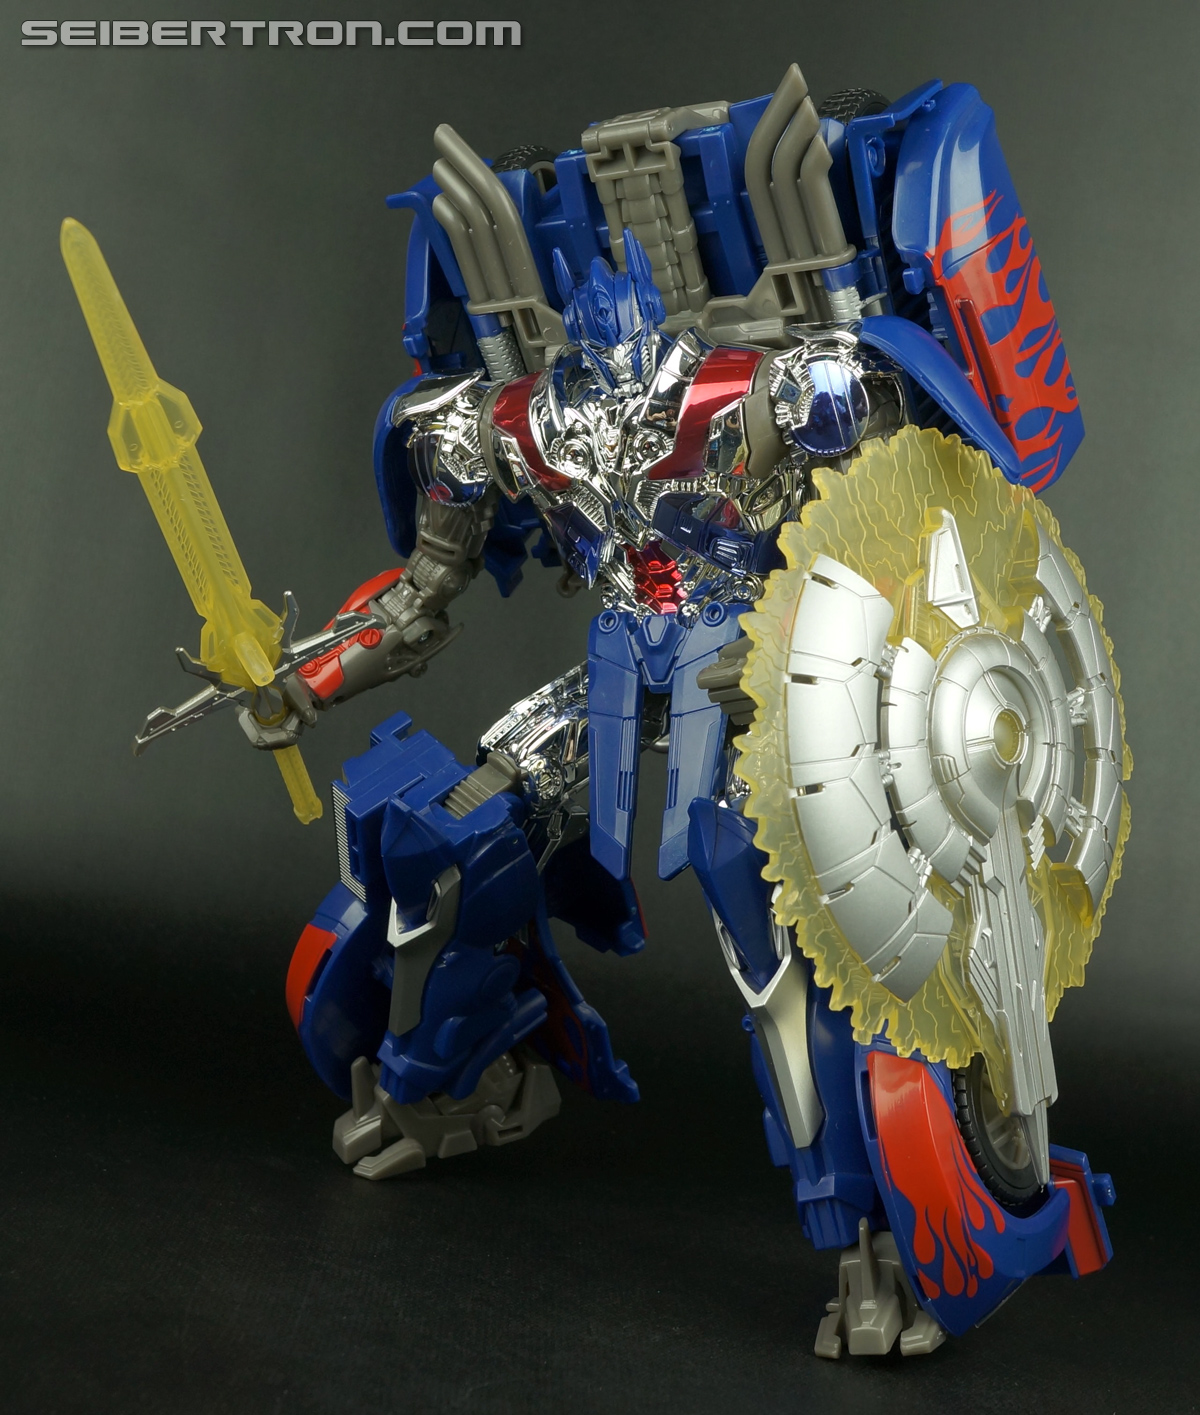 Transformers Age of Extinction: Generations First Edition Optimus Prime (Image #135 of 214)